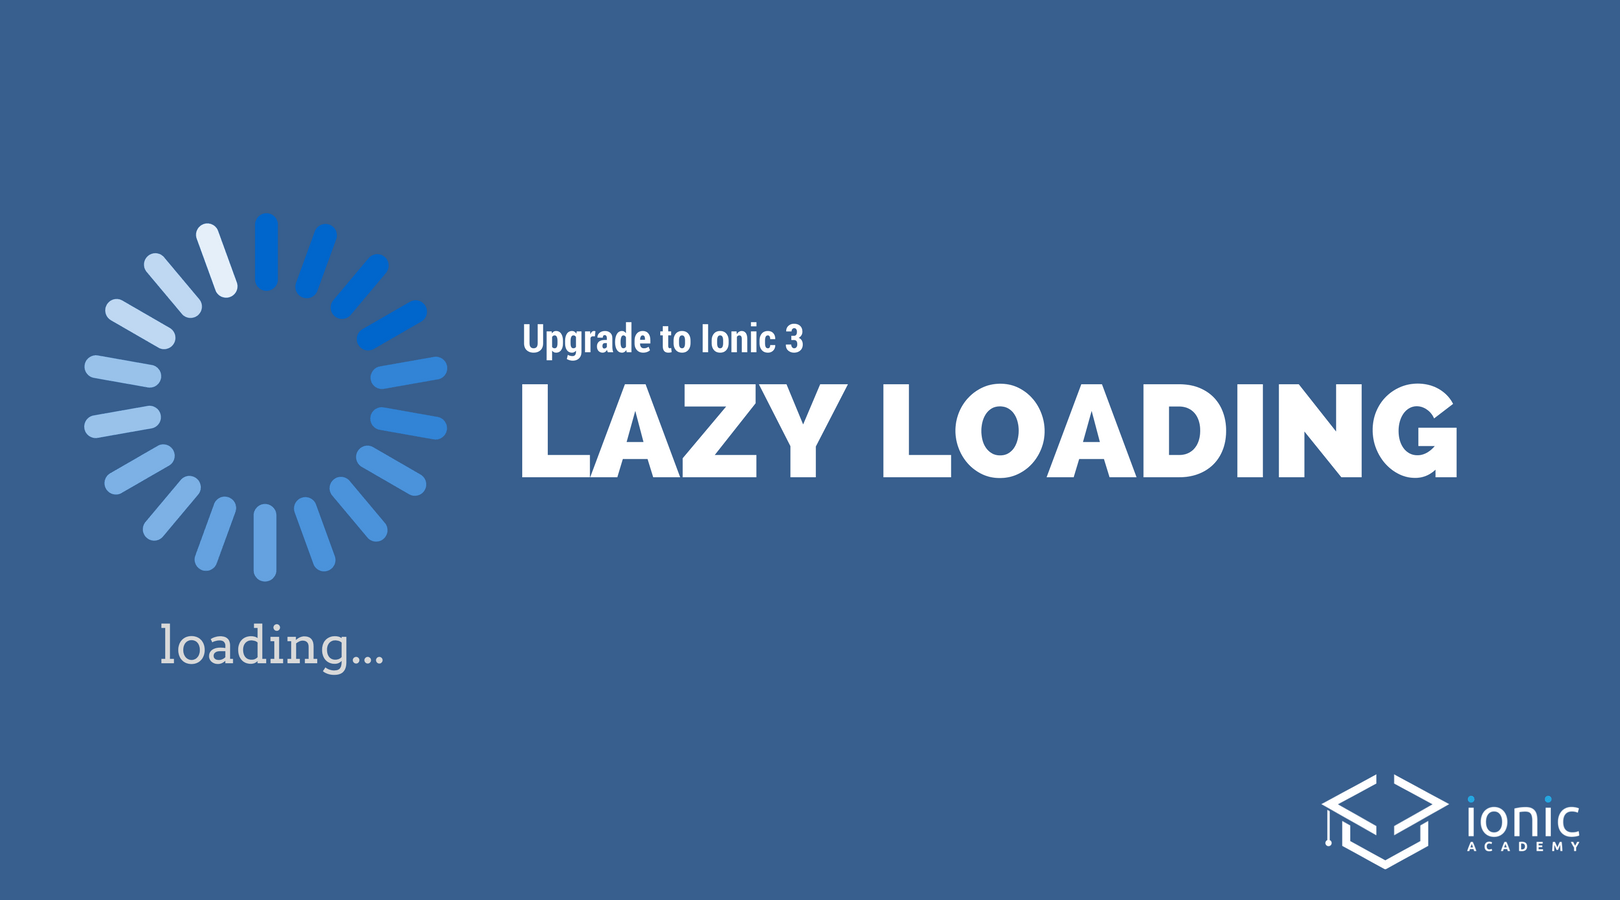 Upgrade to Ionic 3 Lazy Loading (With Script!) - Ionic